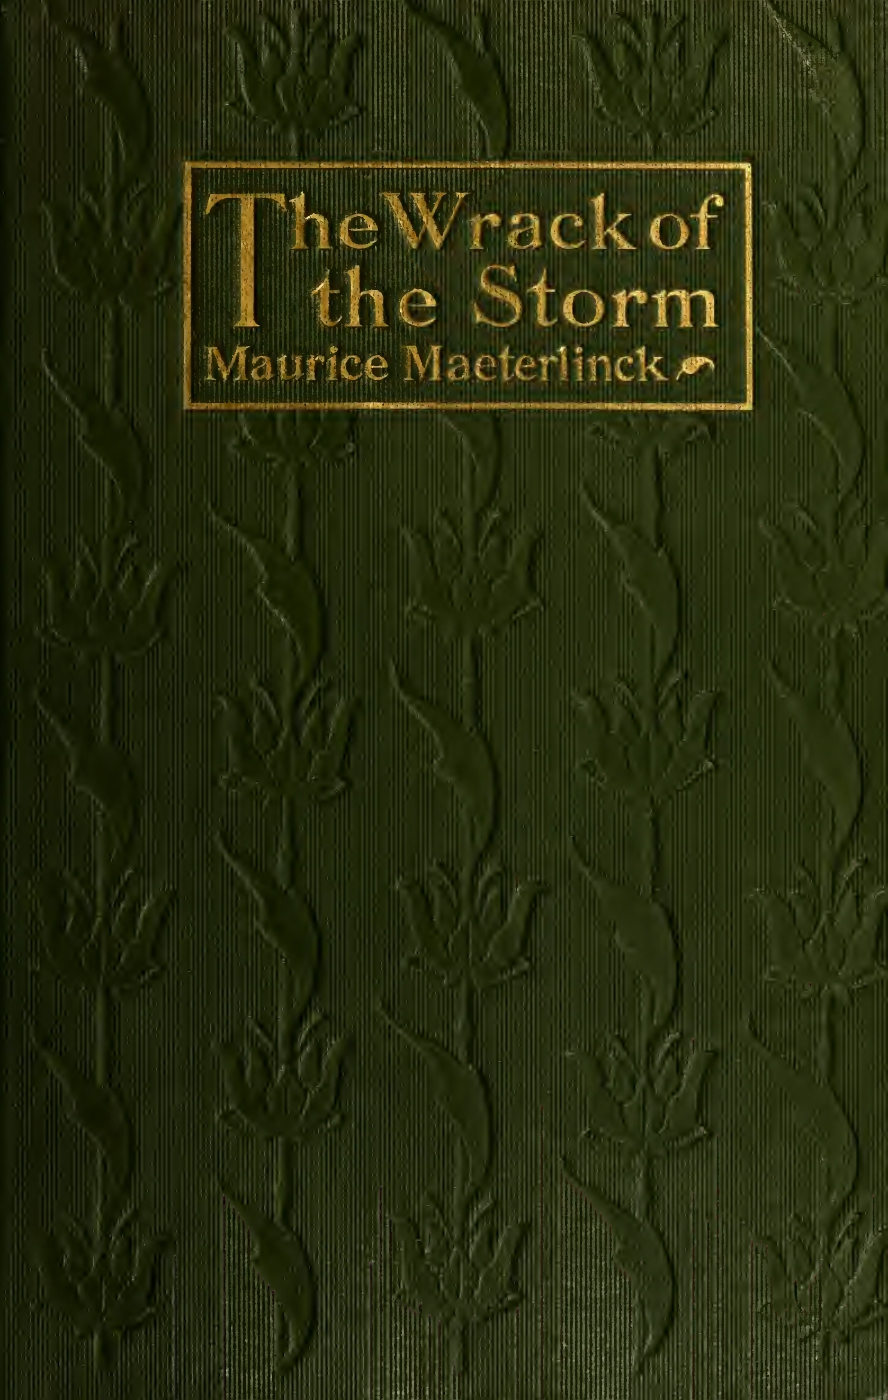 Maurice Maeterlinck, The Wrack of the Storm, cover design by Kahlil Gibran, New York: Dodd, Mead and Co., 1916.